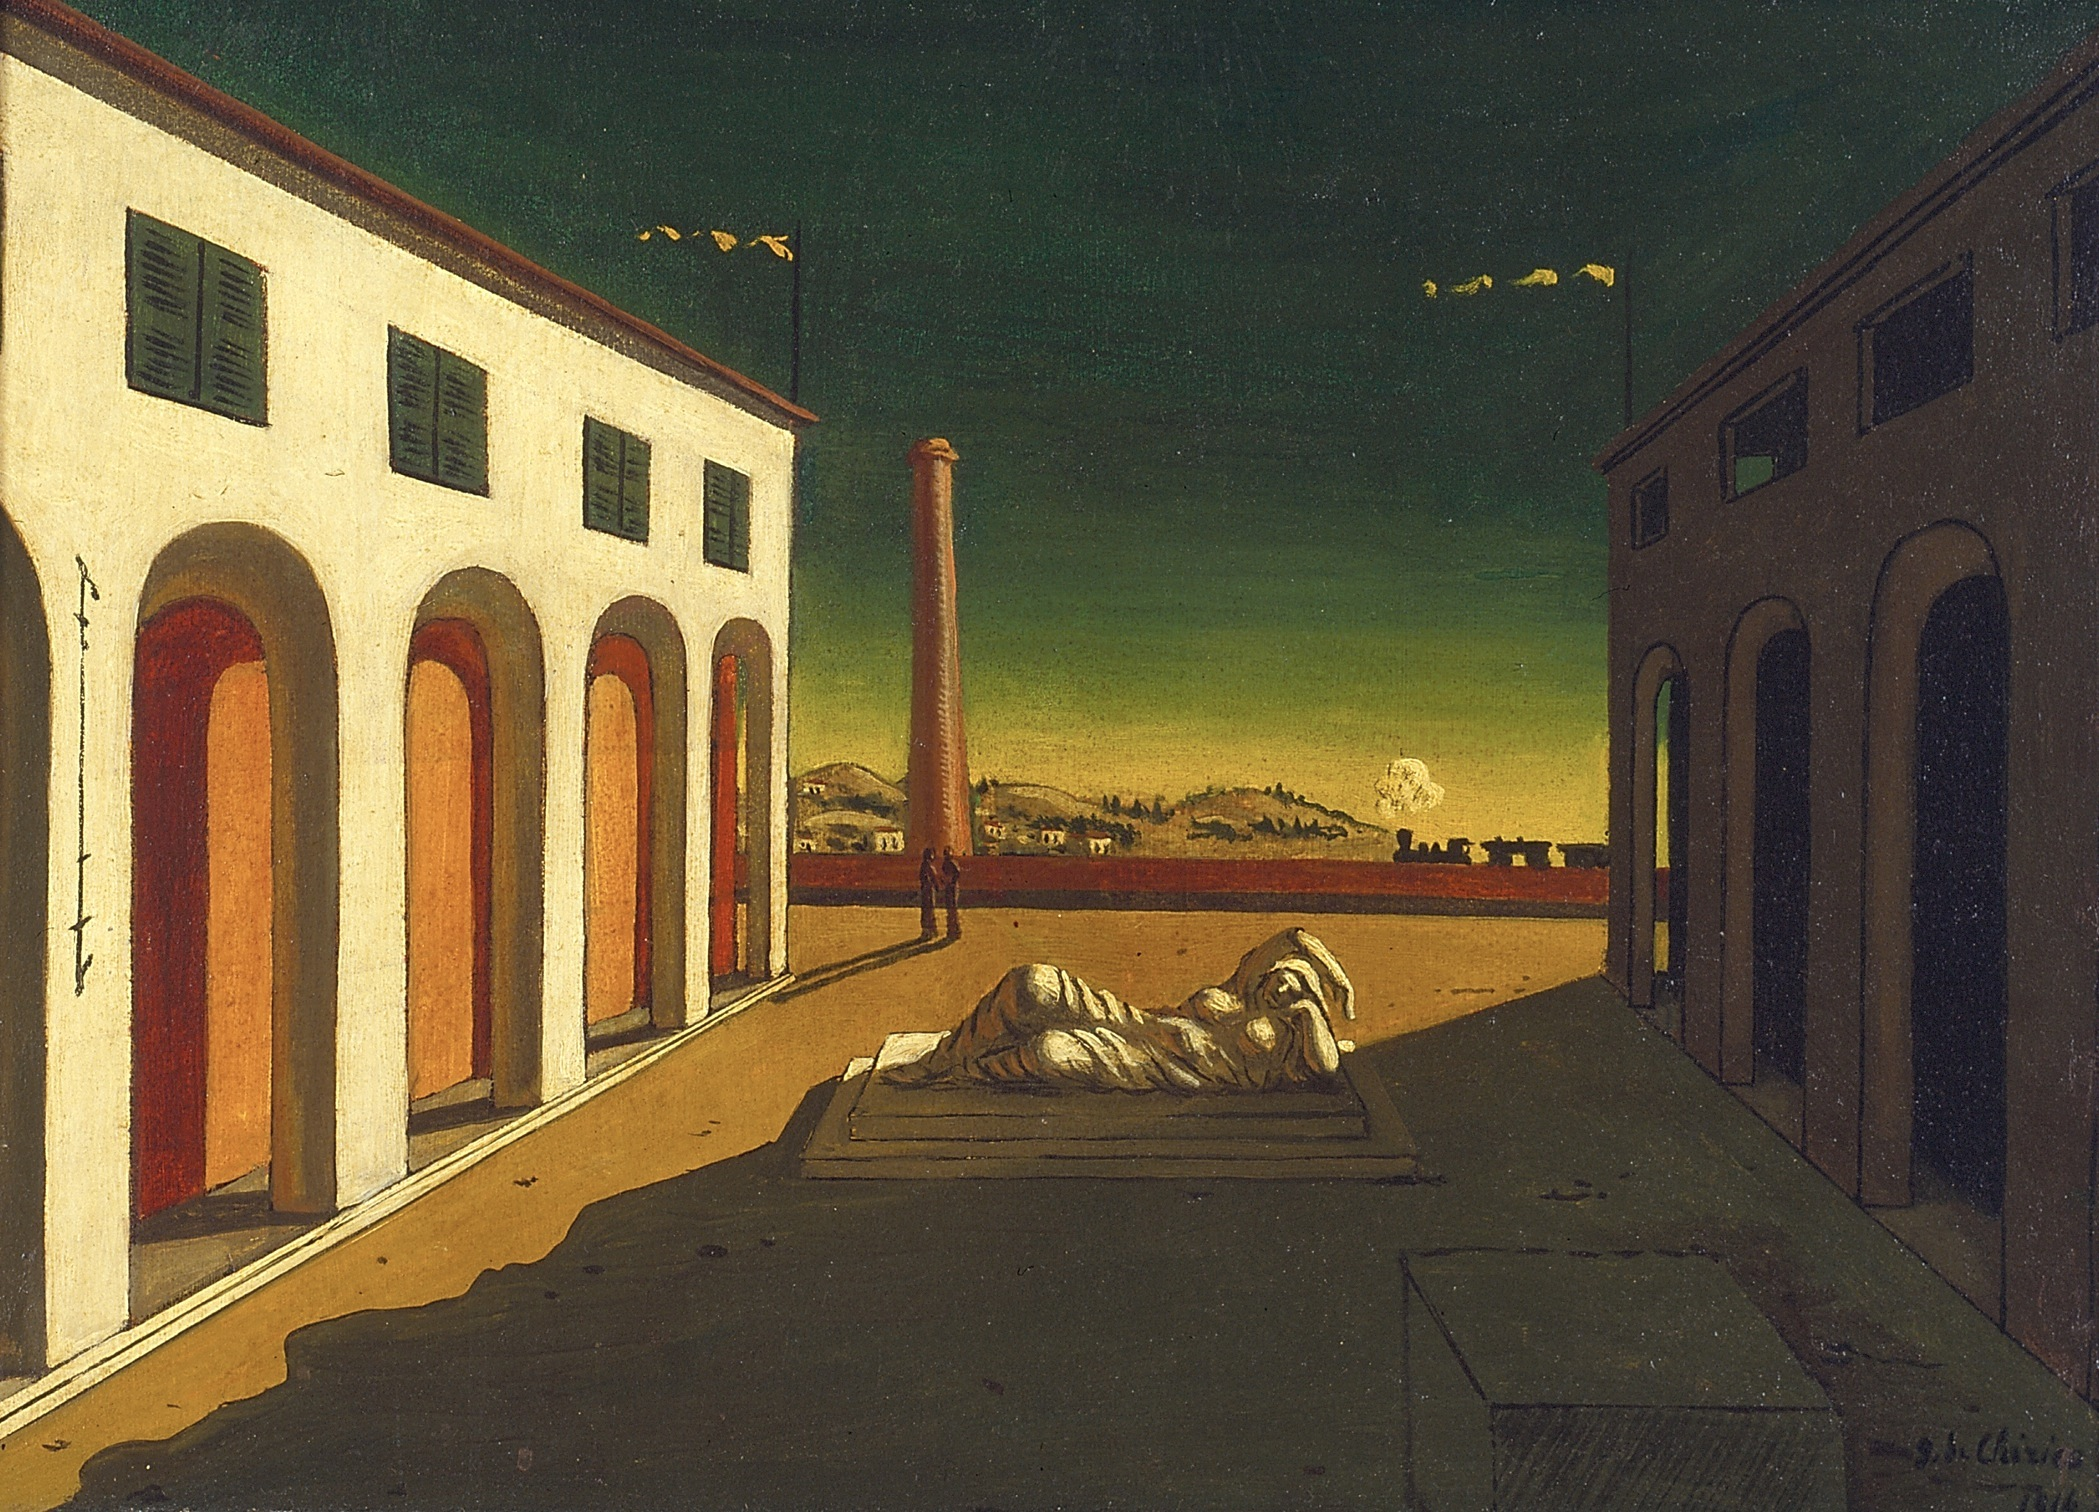 de Chirico. I want to get this weird.